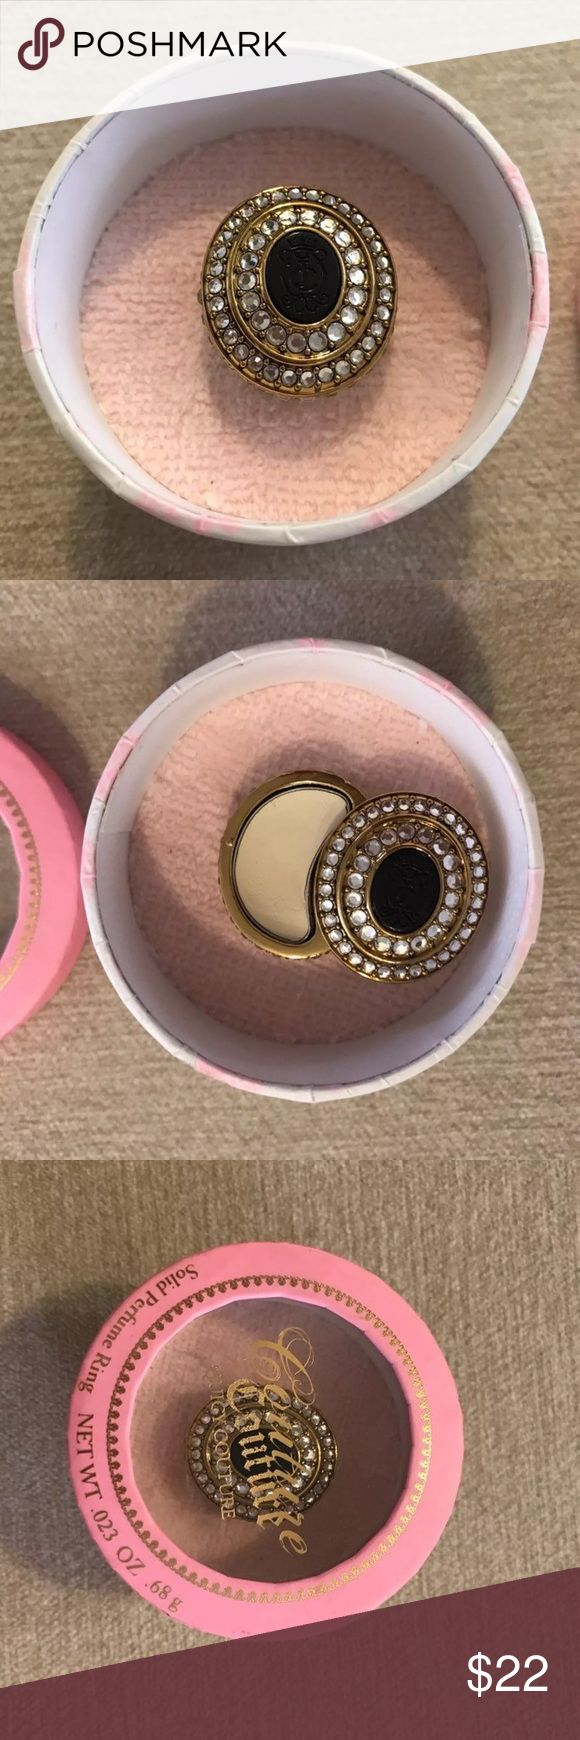 Juicy Couture Perfume Ring ✨Excellent condition!✨   ✨Limited Edition✨  All gold ring with faux diamonds and black logo in the middle. Slide open the ring and the smell/swatch the perfume cream. (Swatched once) all diamonds are still intact. Has adjustable ring band. Squeeze together to tighten. Comes with original box.   R E T A I L : $42 Juicy Couture Jewelry Rings